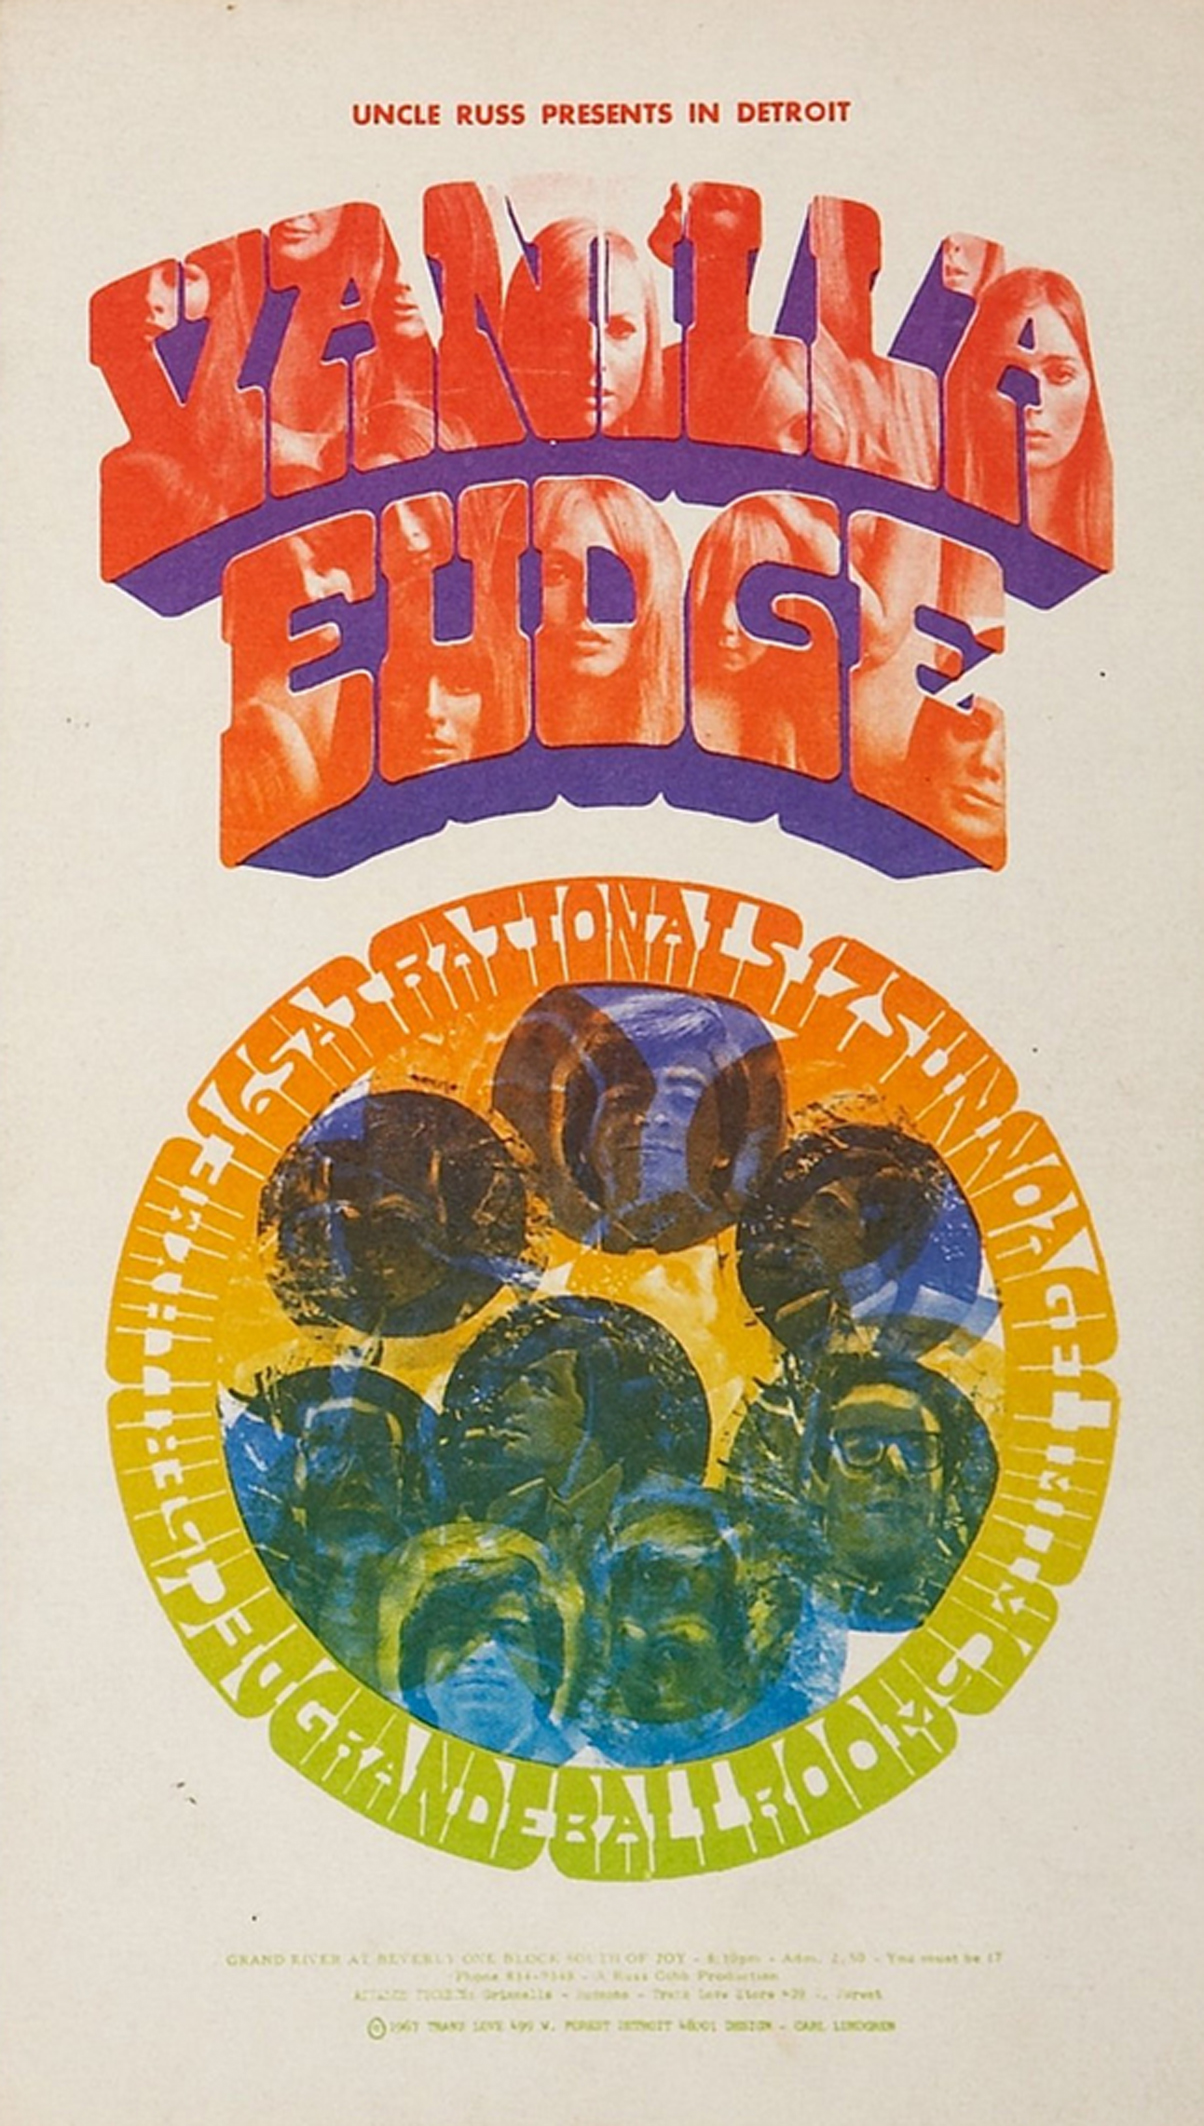 Vanilla Fudge, Grande Ballroom (December 1967)